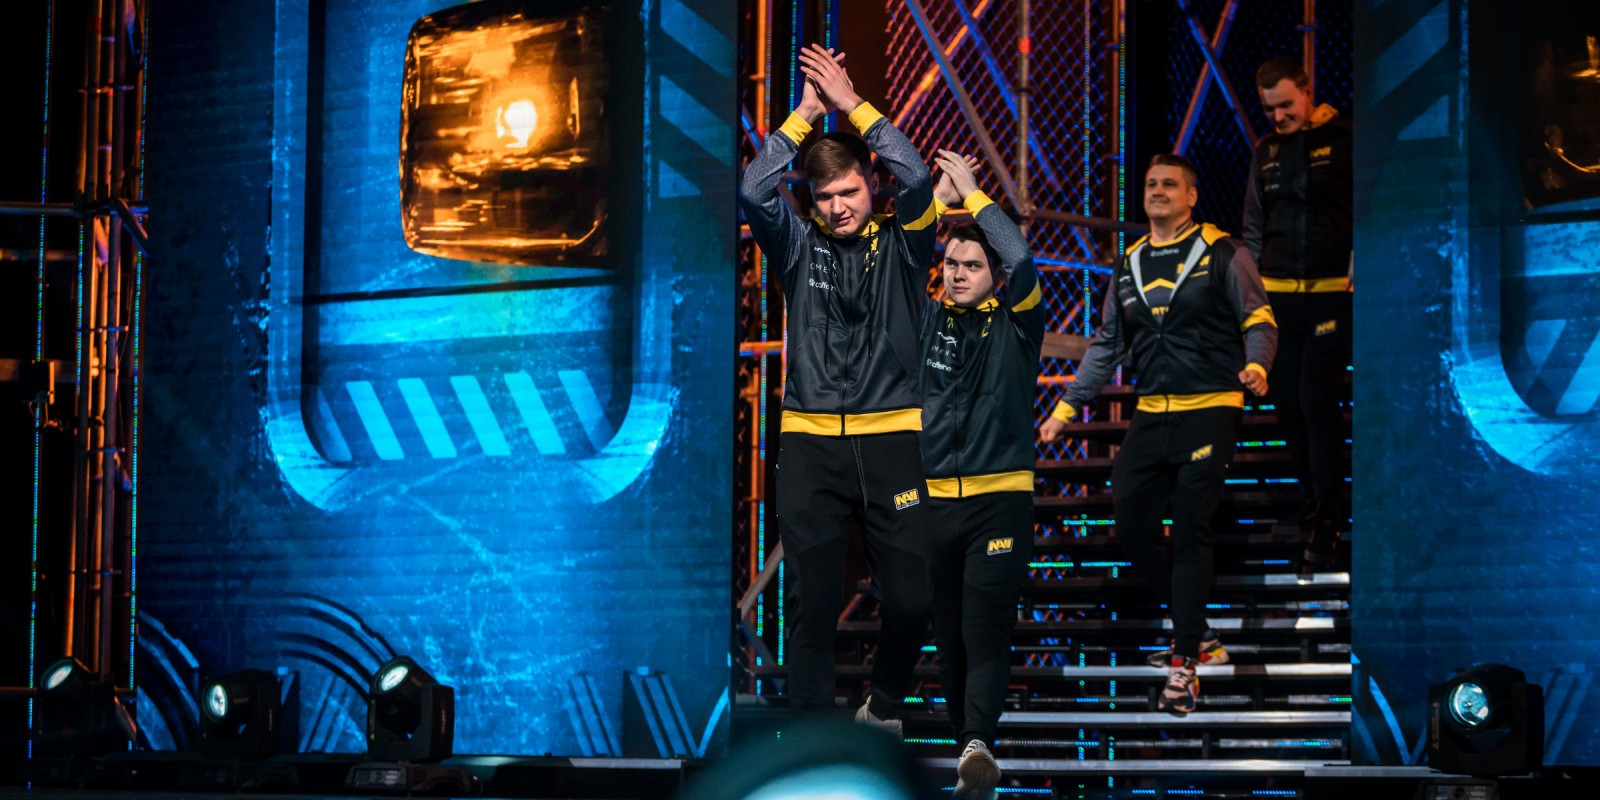 Photos of Natus Vincere's Counter-Strike Global Offensive team competing at the CSGO Major in Katowice Poland. The team placed 3rd/4th after being eliminated in the semi finals.